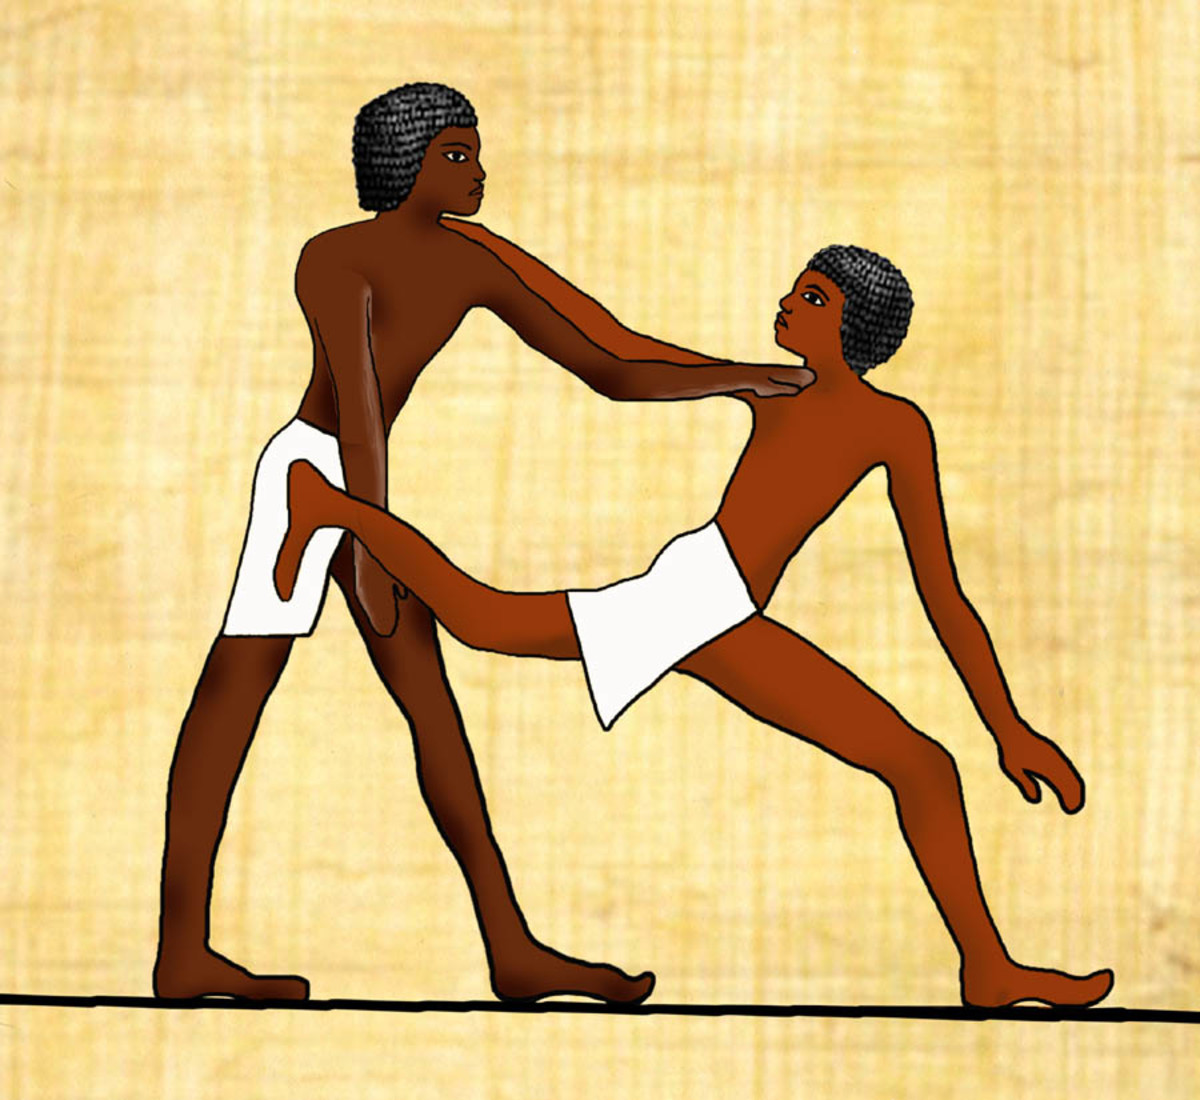 Ancient tomb art from the Beni Hasan site in Egypt date back 4,000 years ago, illustrate martial arts techniques.